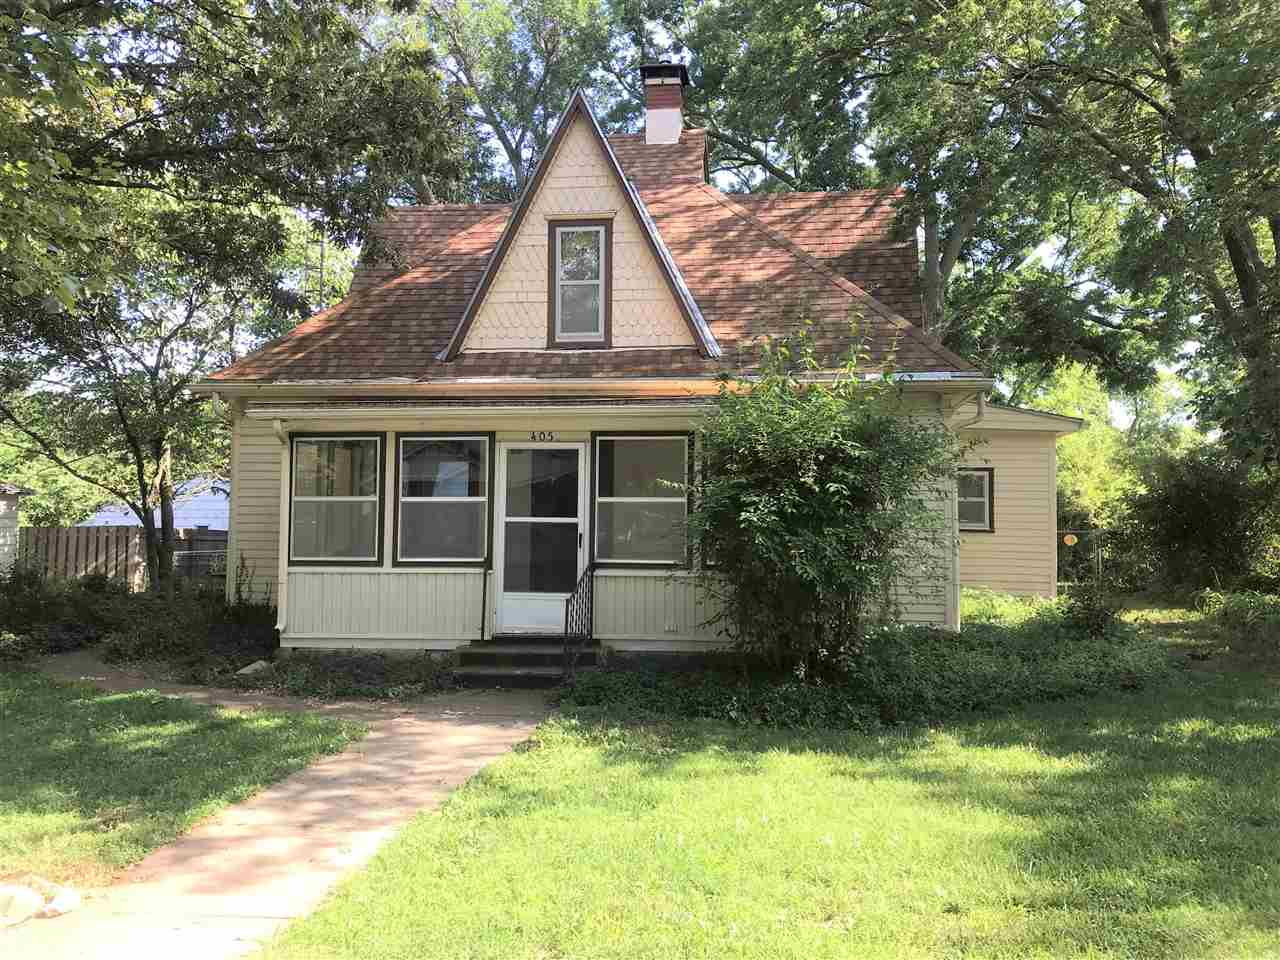 With charming features and extra space, this home has a lot to offer. There is an open floorplan from the living room to eat-in kitchen and original woodwork throughout the home. There are two bedrooms on the main level with 1.5 baths, office and bonus room. The yard is child and pet friendly with established trees and a full fence. Comes with all kitchen appliances. HVAC is newer. There is a two-car detached garage with lean-to space for additional parking. The garage is set up with electric for a welding or woodworking shop. The home is being sold with an additional portion of the lot behind it which contains a shed. Easy drive to Fort Riley! Call Abby Anderes with Kansas Best Realty for a showing 785.479.3983.